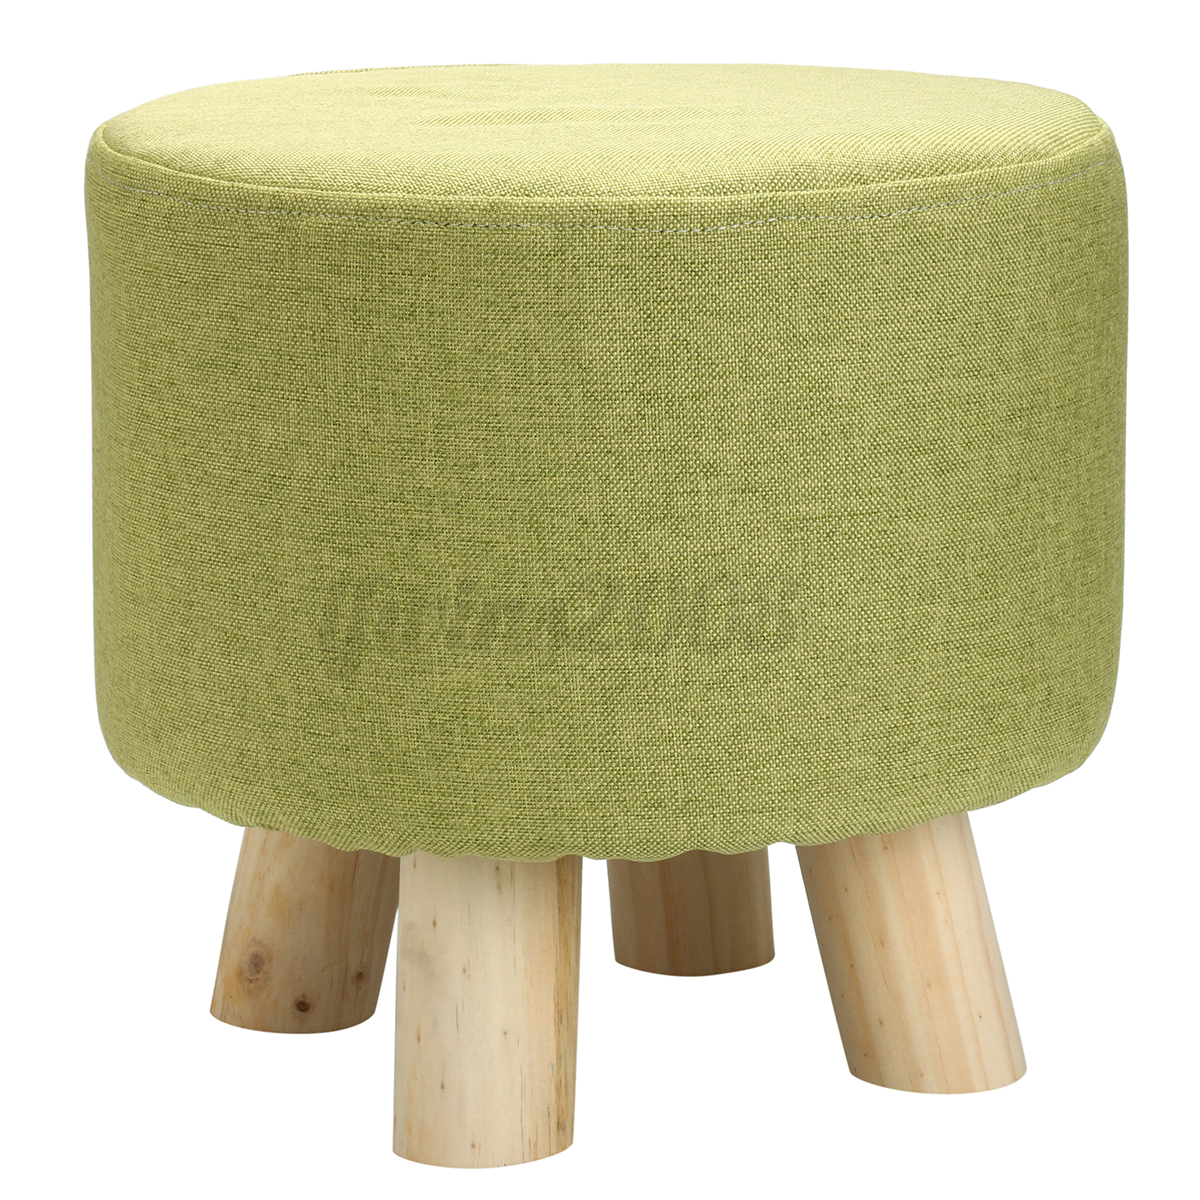 chair stool small cheapest high chairs online footstool round wood pouffe ottoman foot